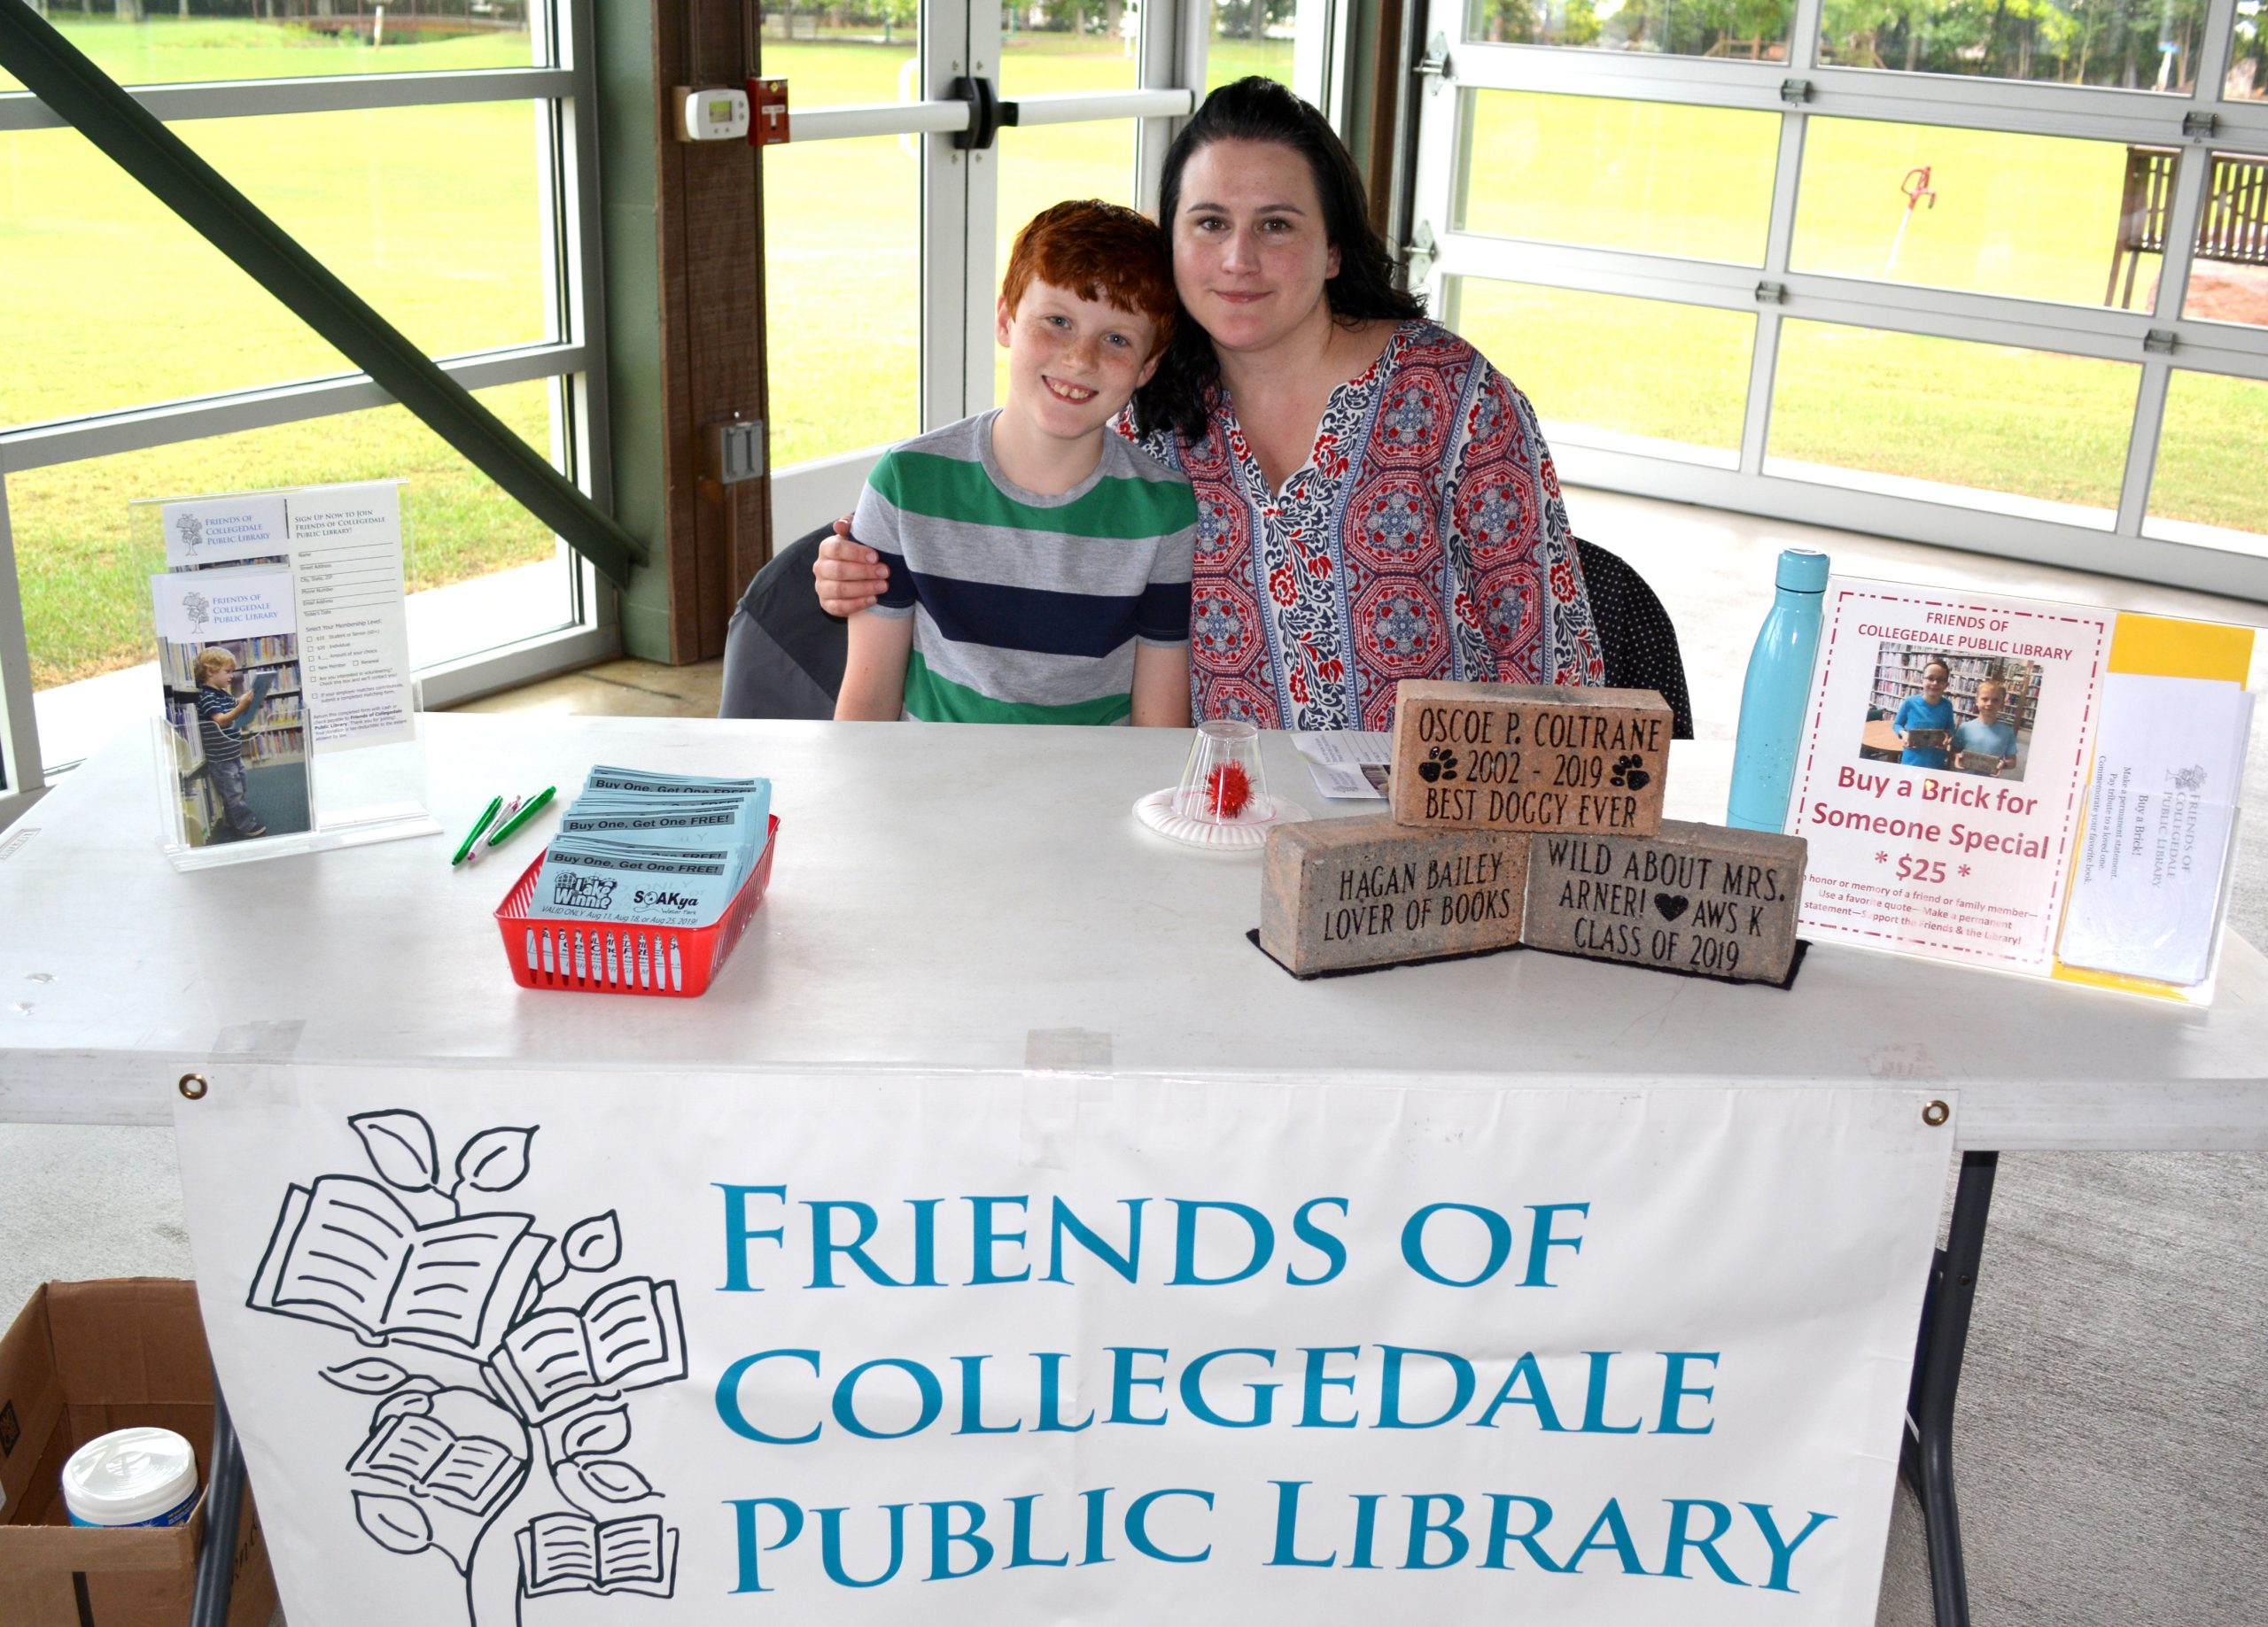 Photo of Friends of the Collgedale Public Library volunteers at a library event.